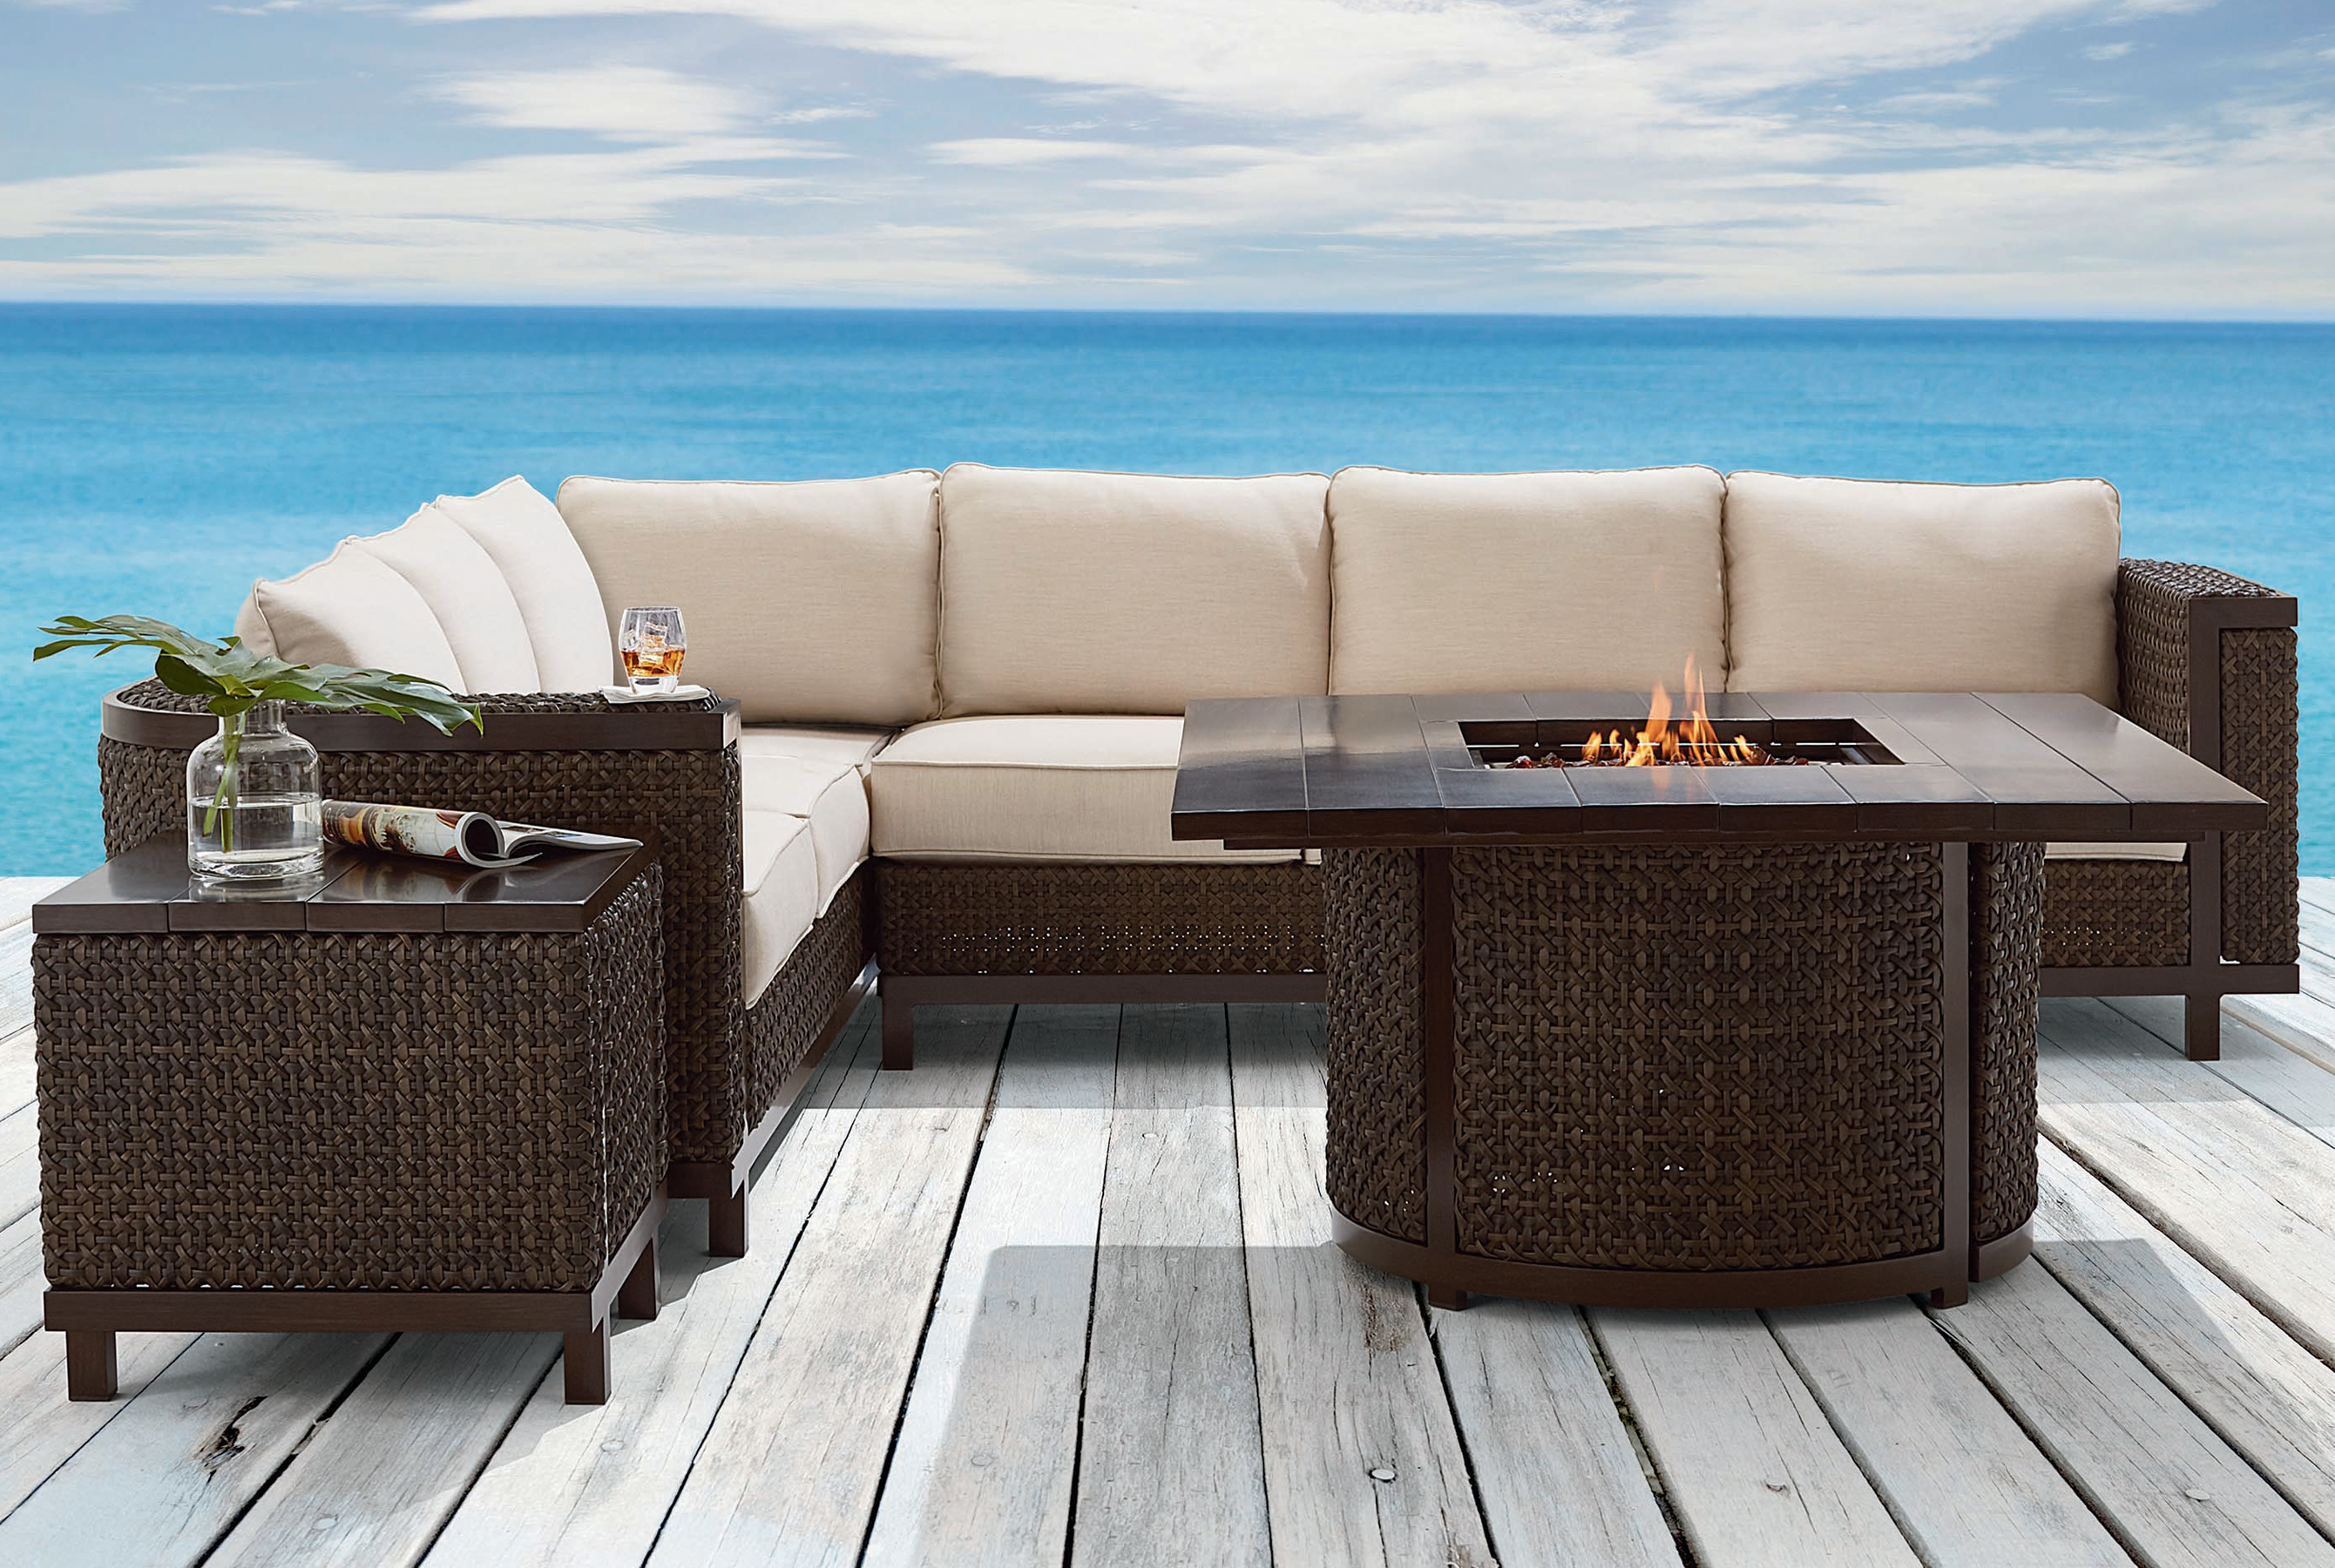 Brentwood Outdoor Wicker 3 Piece Sectional. By ART Furniture